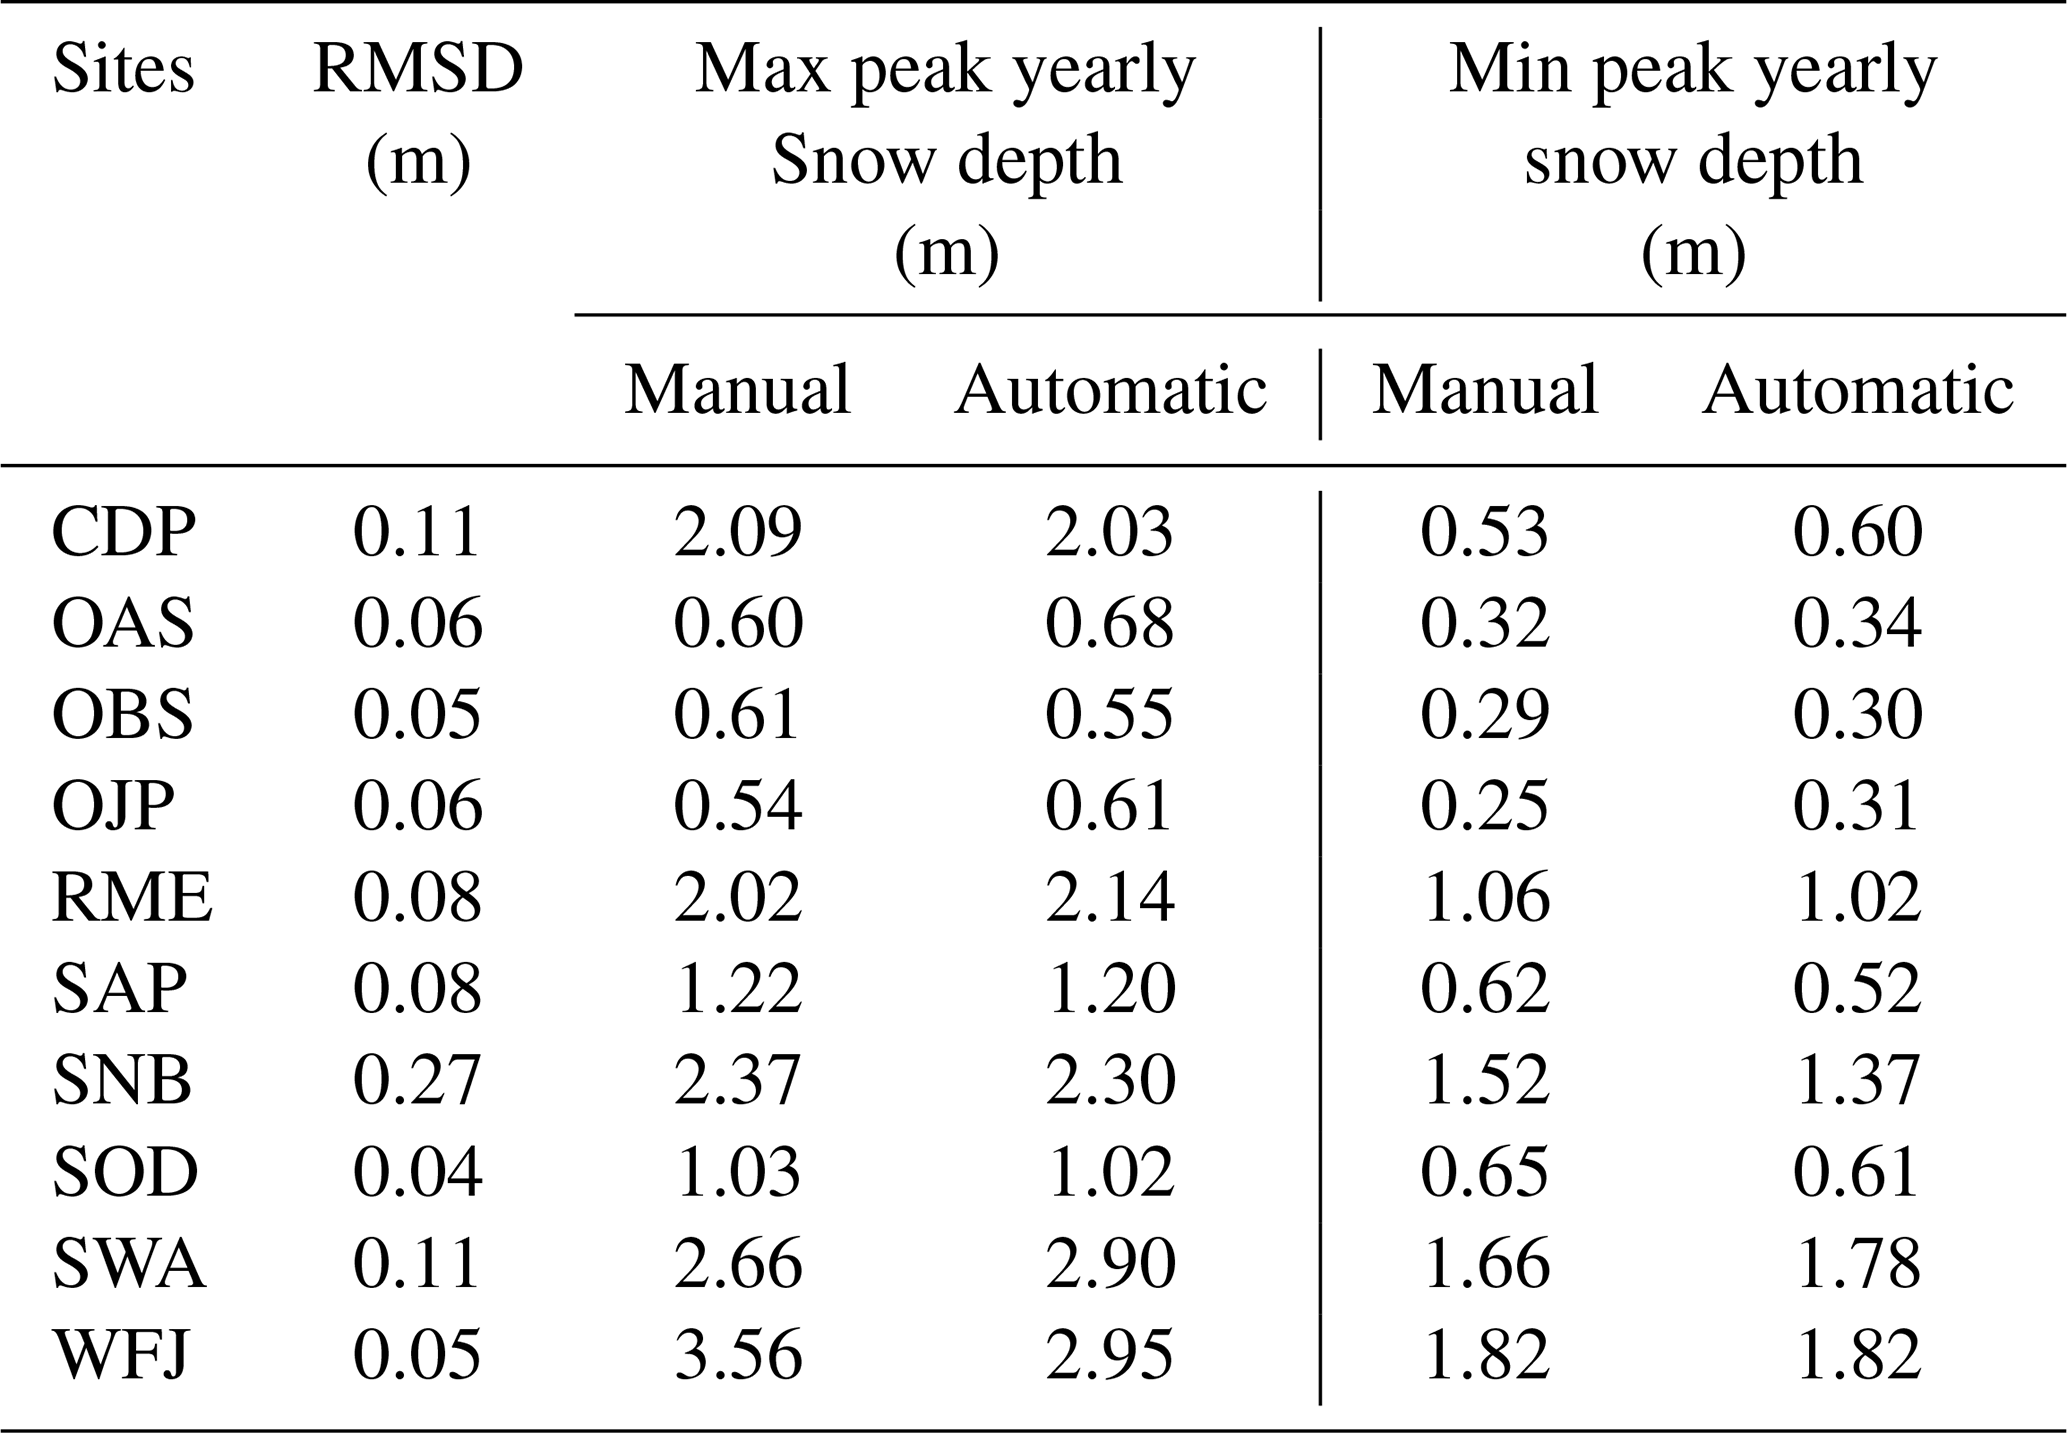 ESSD - Meteorological and evaluation datasets for snow